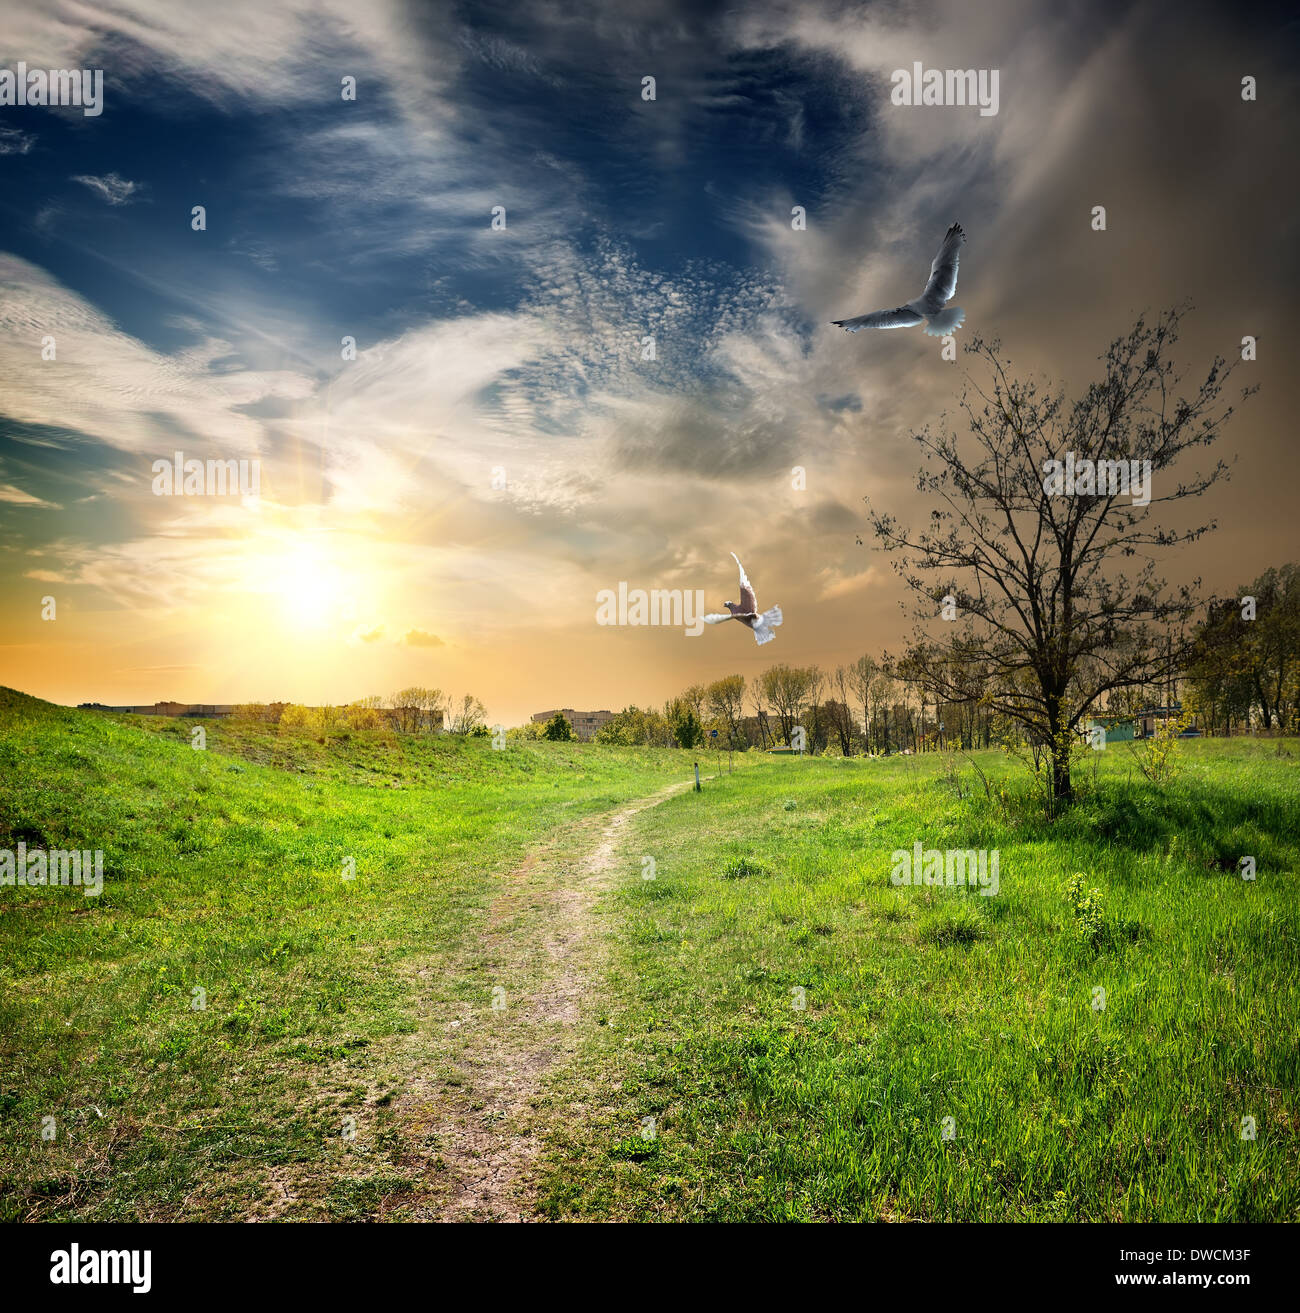 Country road and birds in the twilight of day - Stock Image